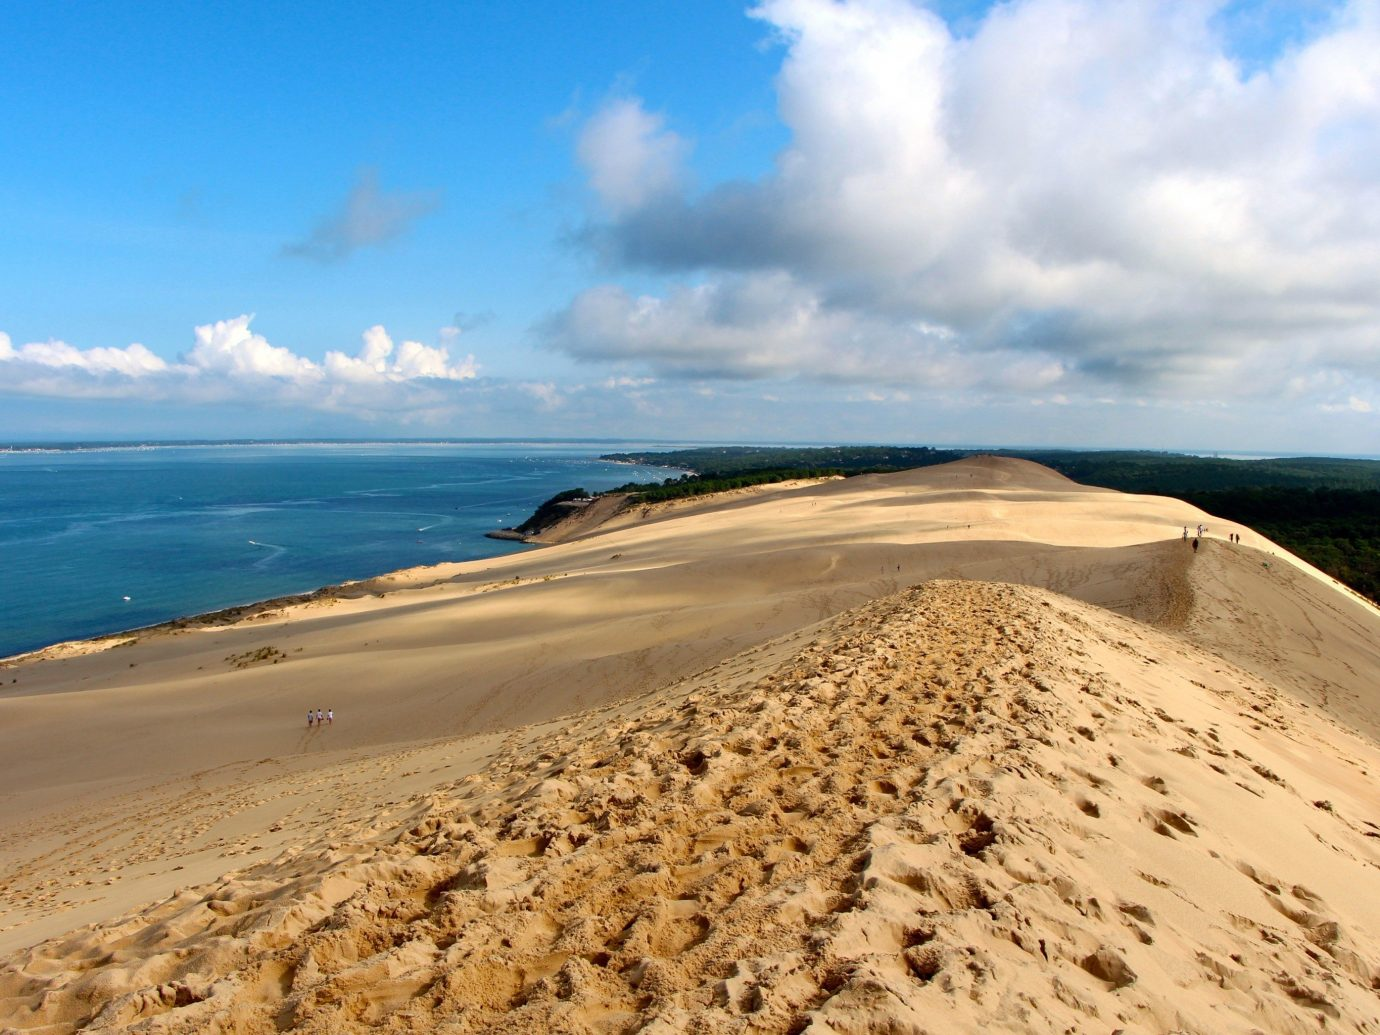 Trip Ideas sky outdoor Beach Nature habitat water Sea landform natural environment body of water shore geographical feature Coast sand horizon Ocean cloud dune cape landscape wave material clouds aeolian landform plateau sandy day